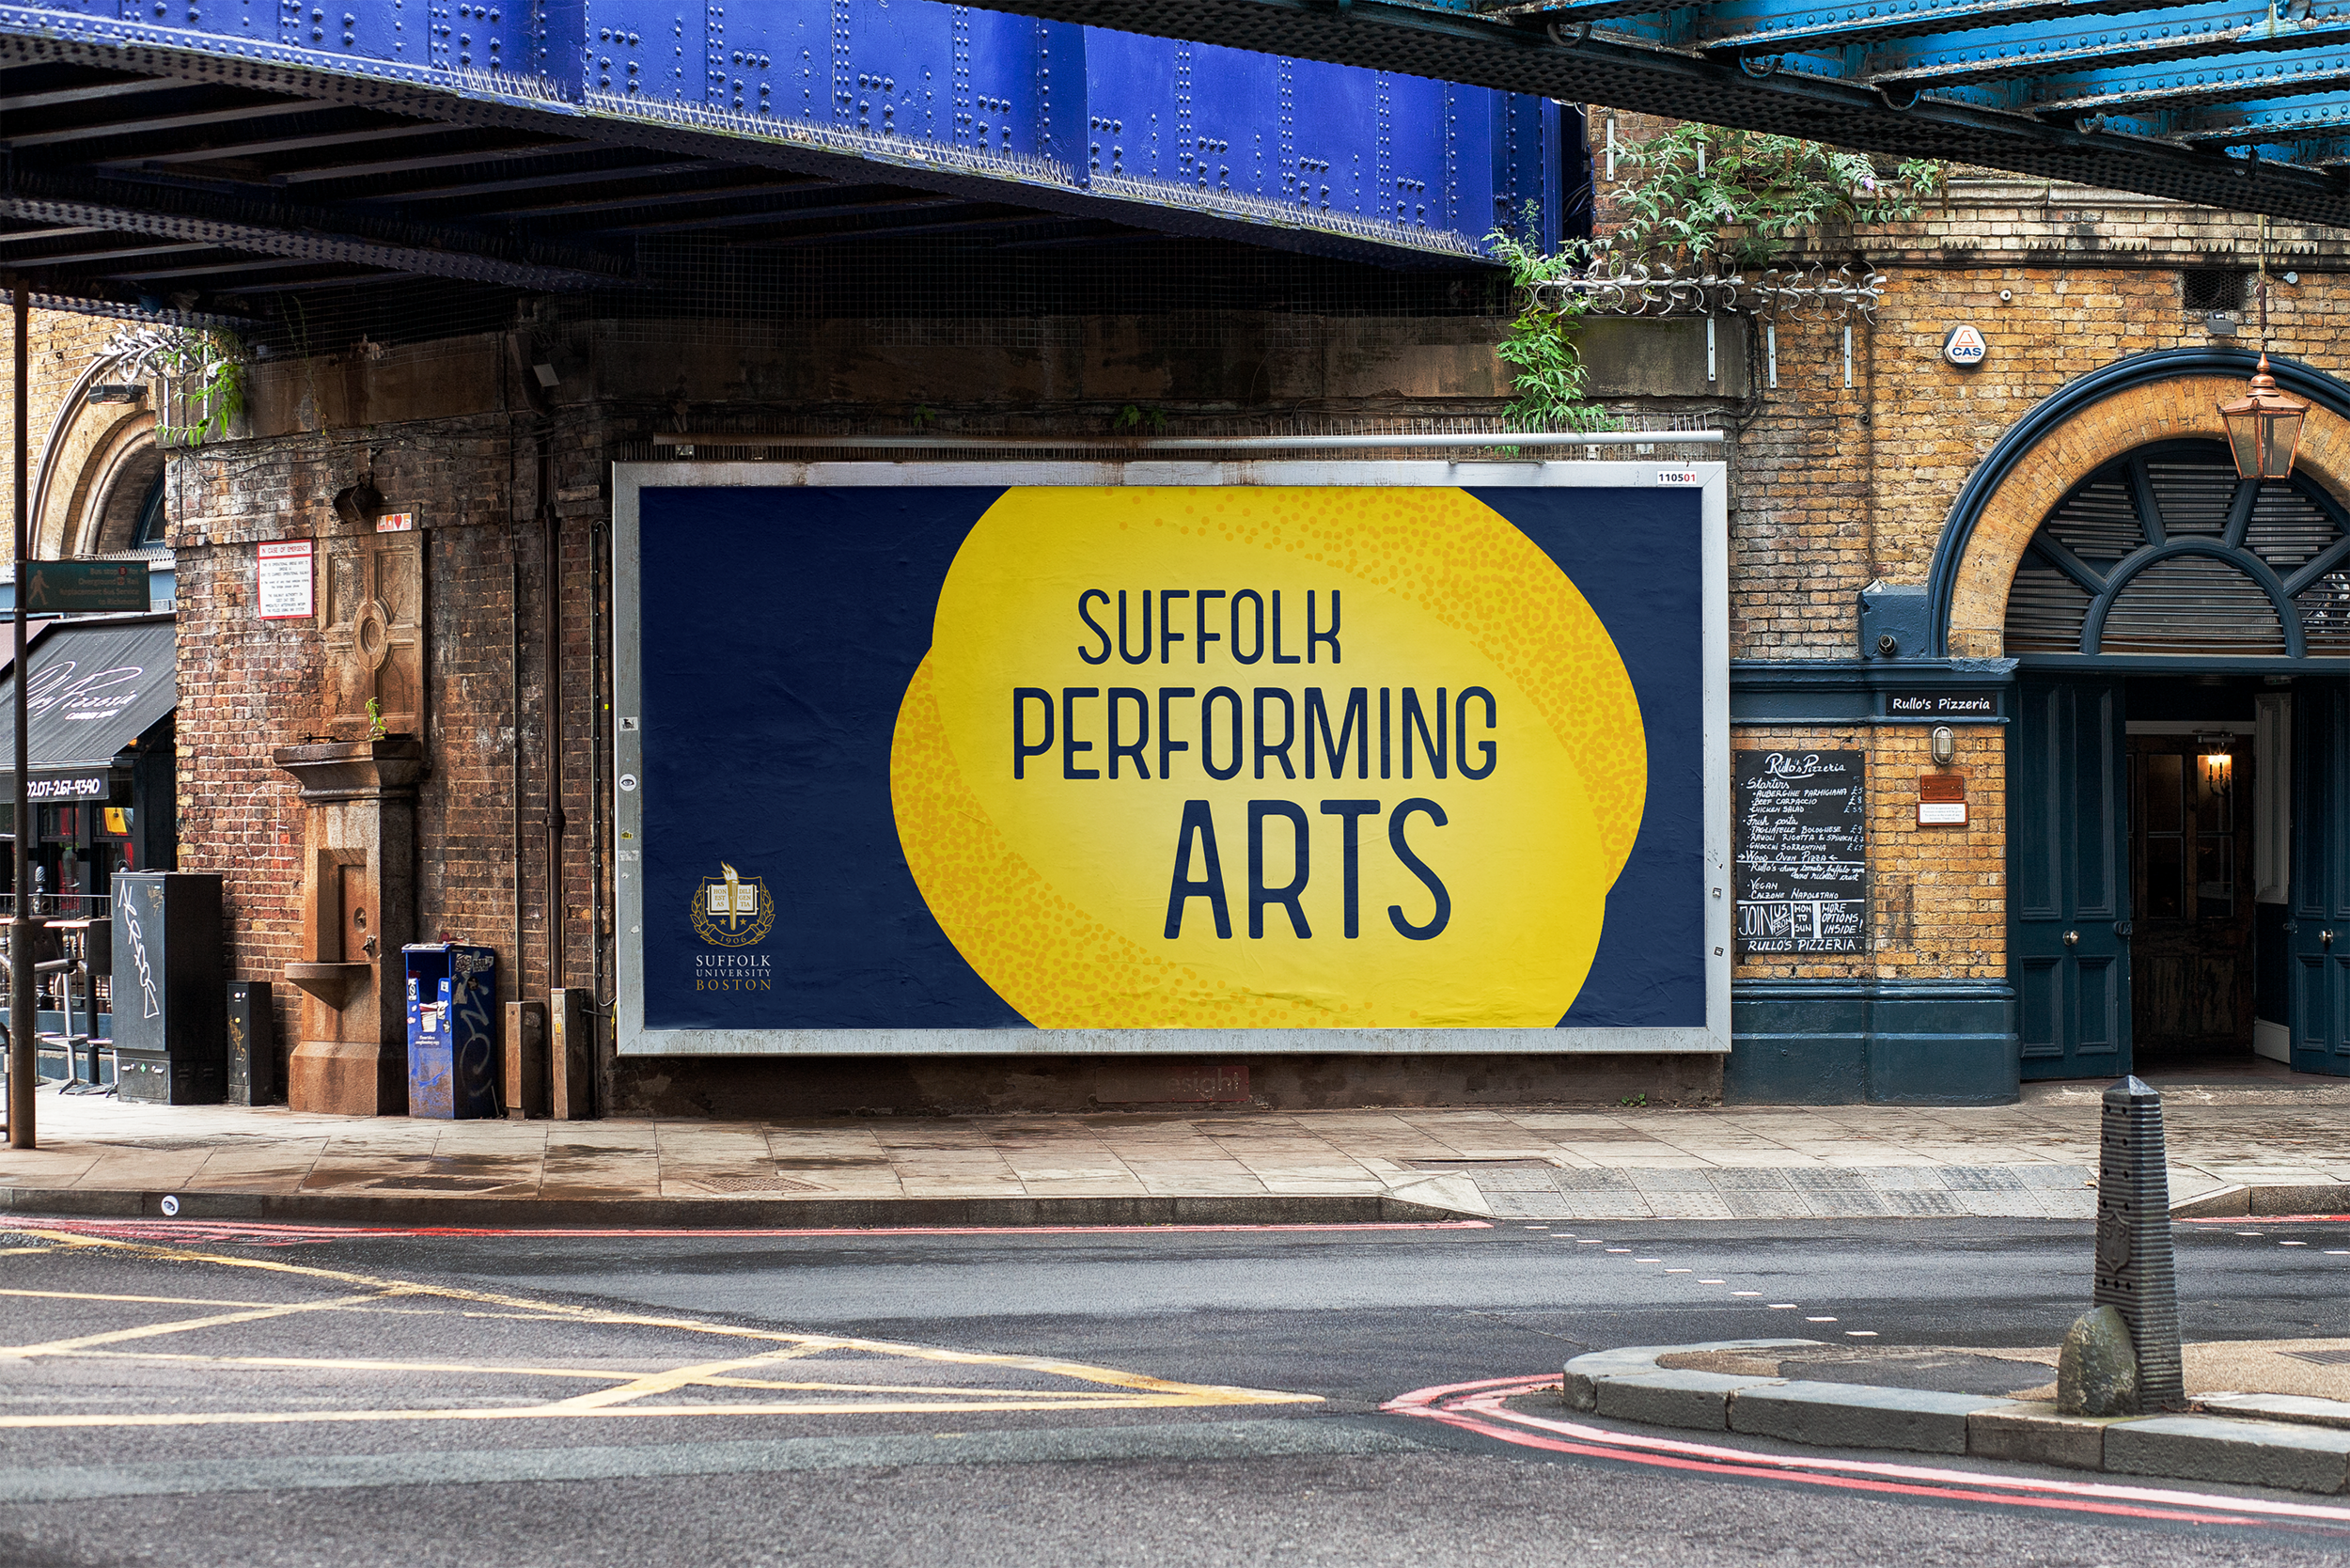 Suffolk University - The Suffolk University Performing Arts Office needed an identity that would unify the diverse performing arts groups and events that they support and produce throughout the city of Boston.